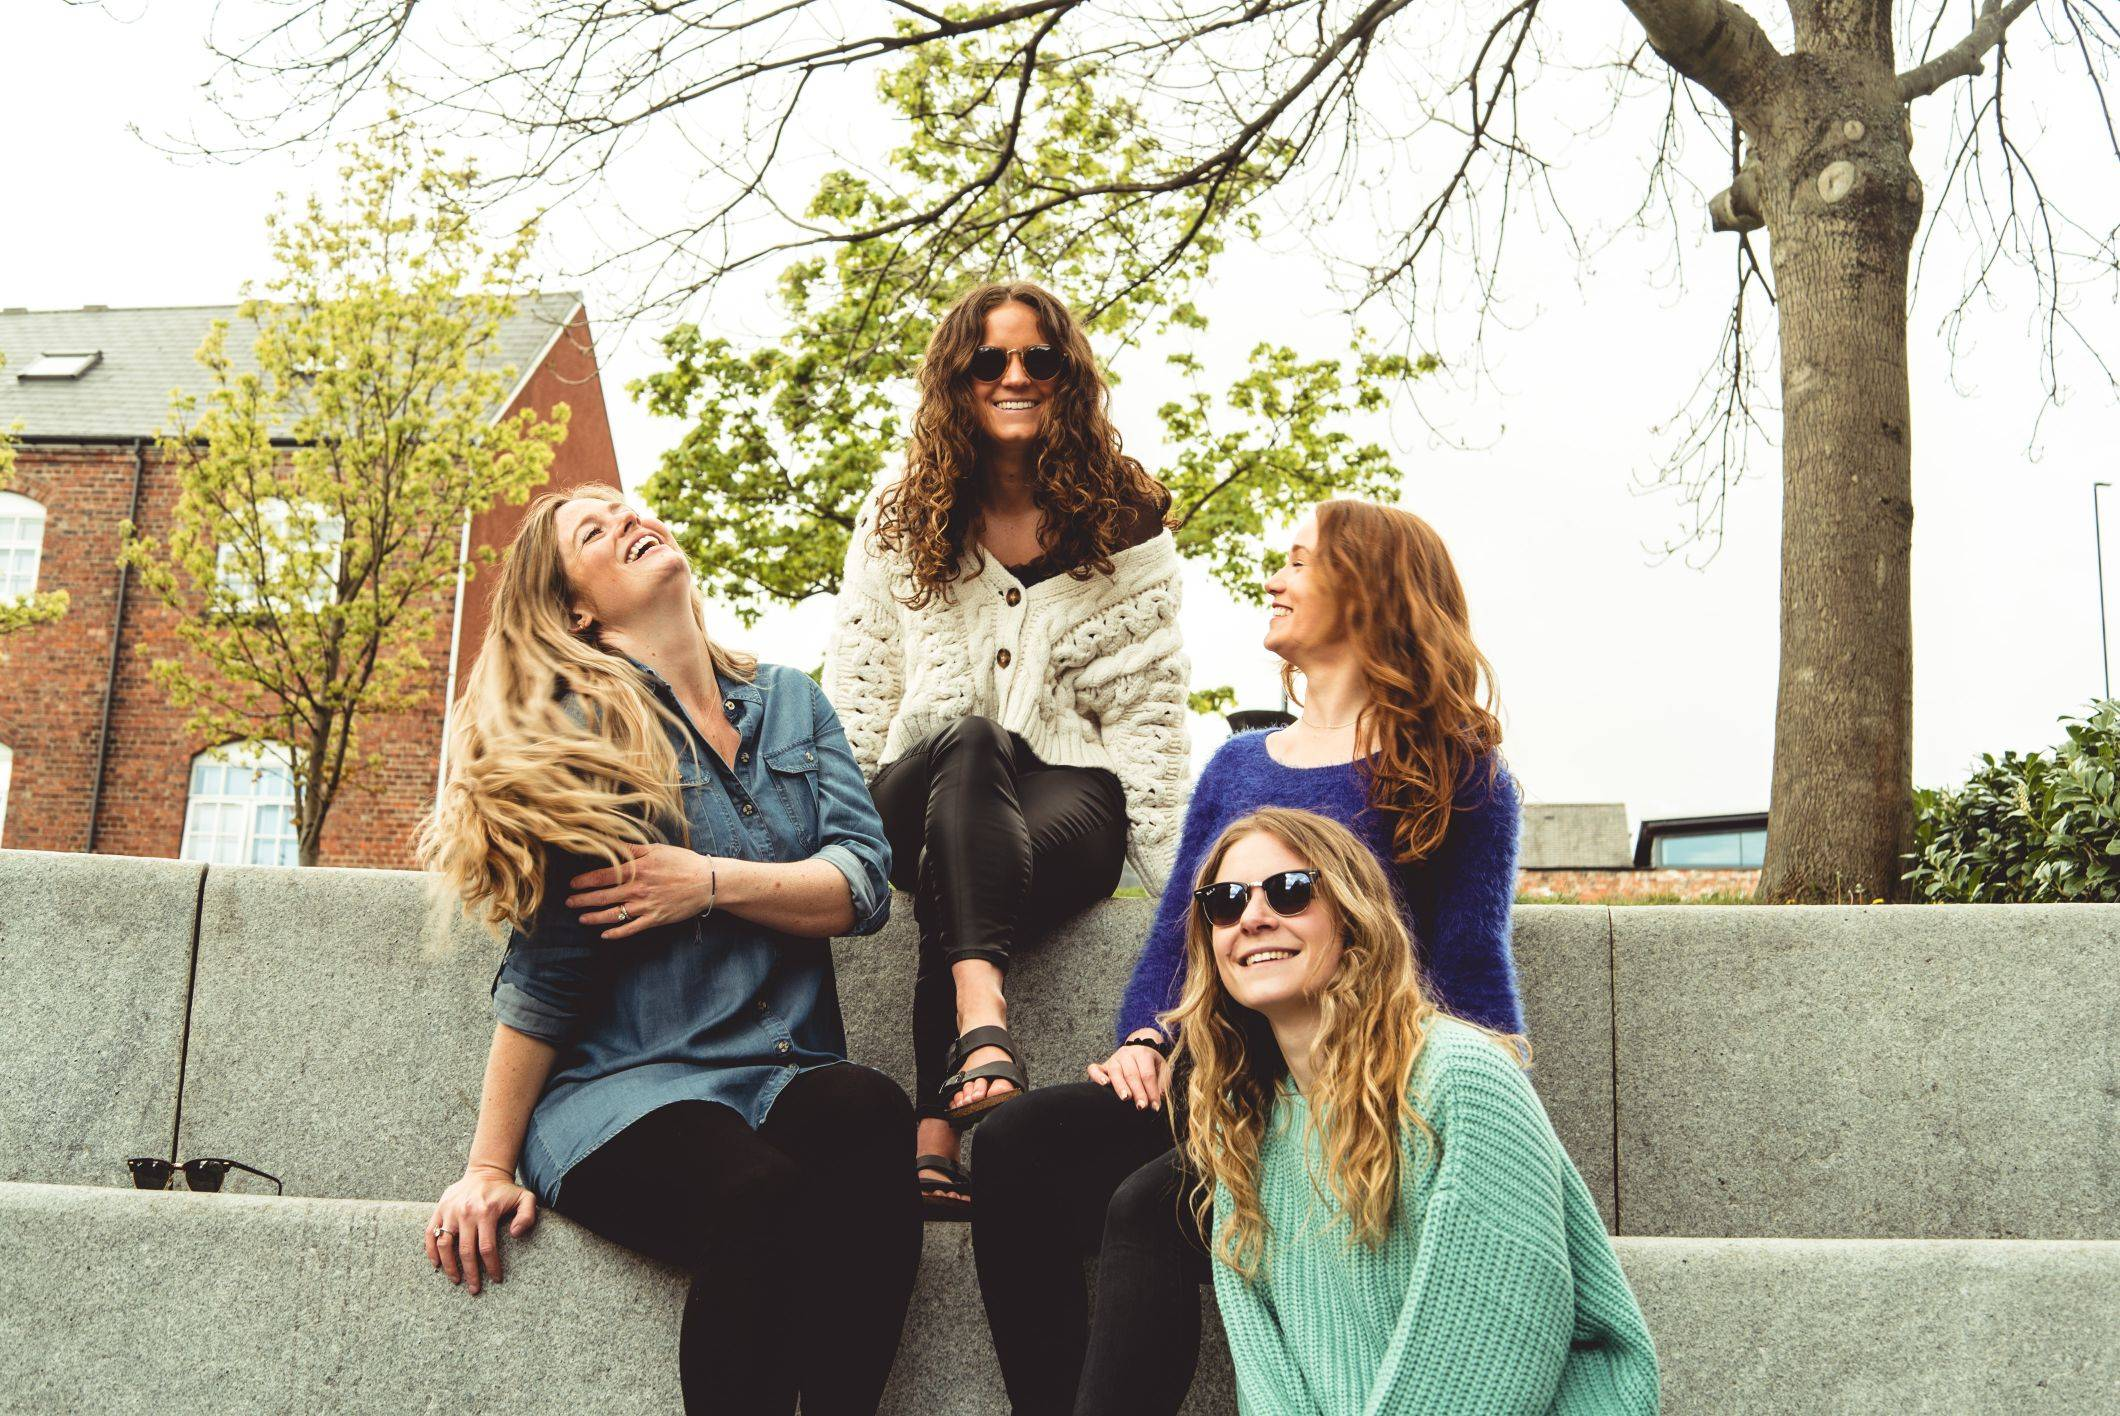 Image of girls sitting on steps laughing